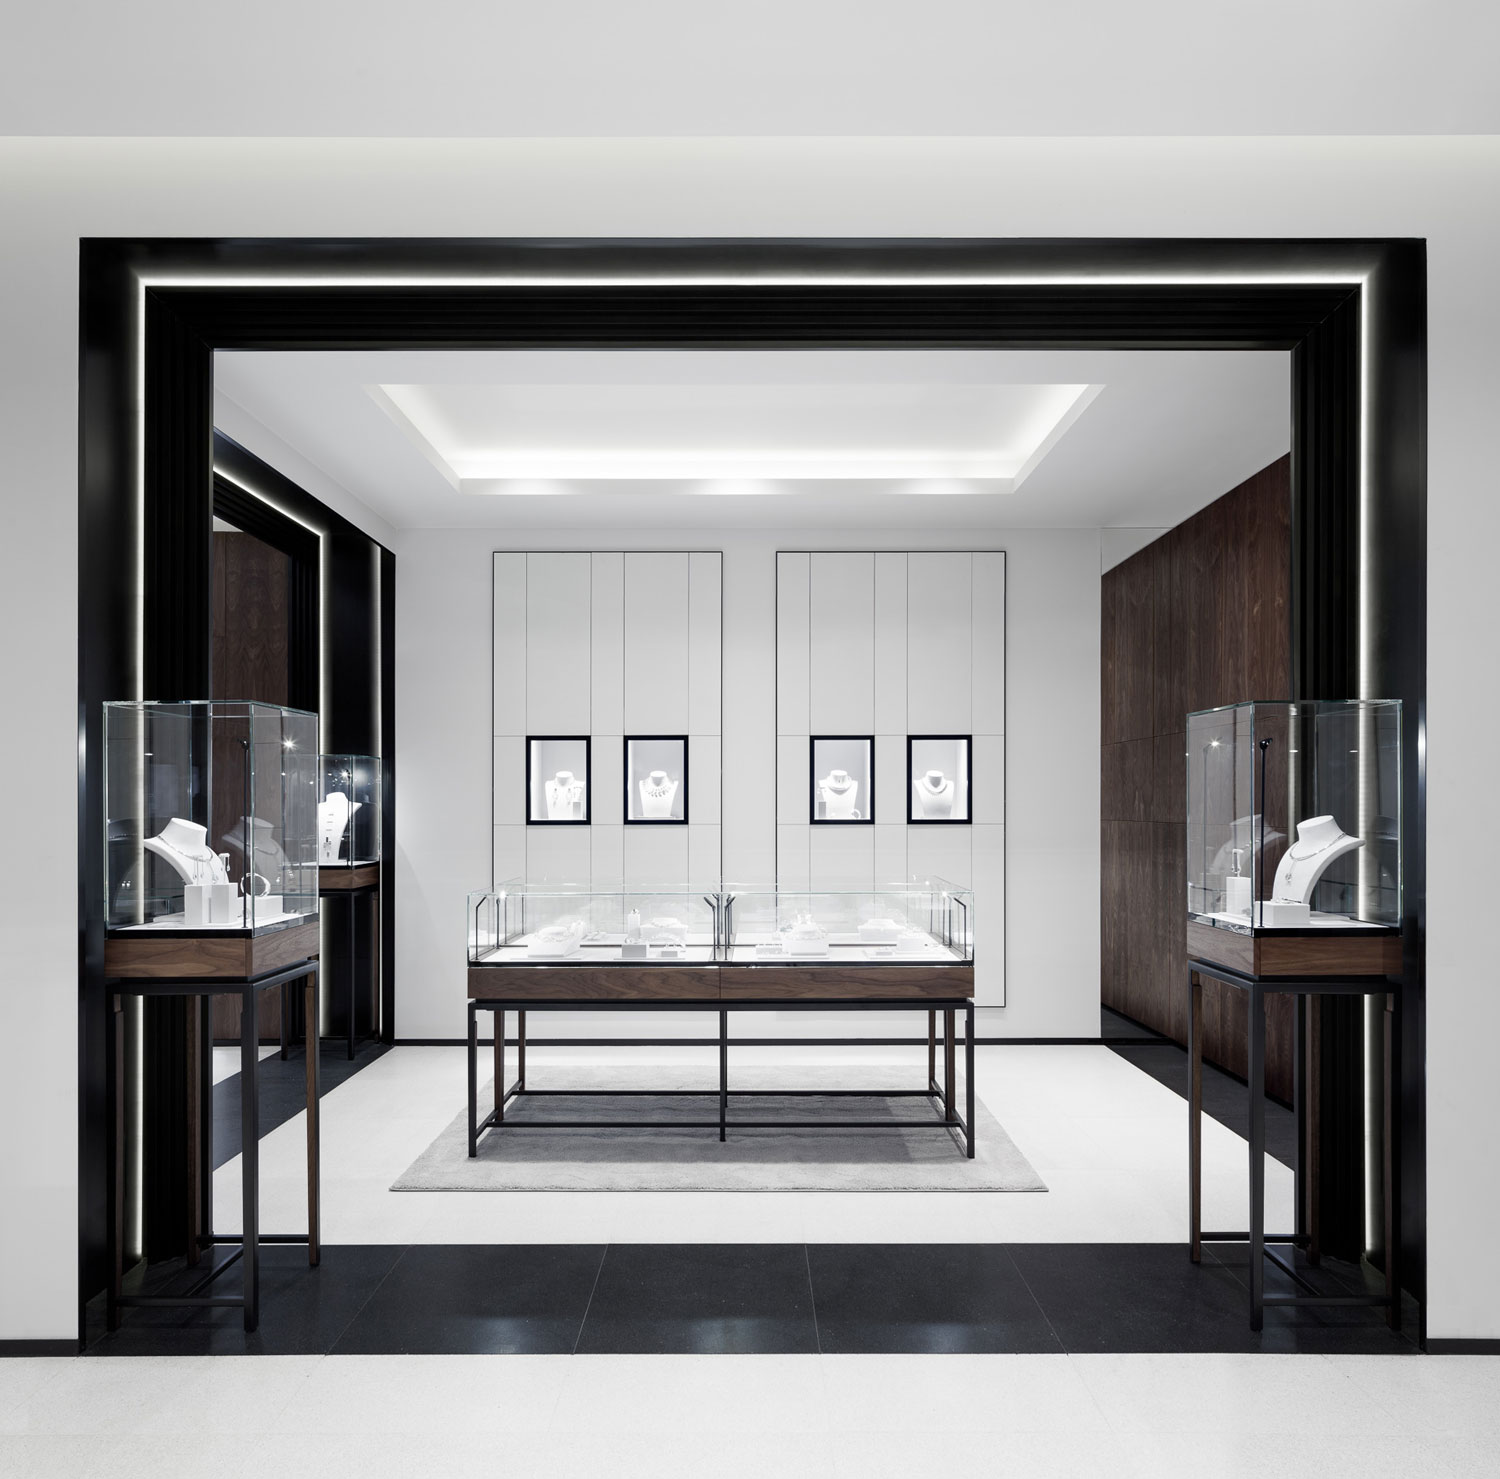 Georg jensen 39 s london boutique by studio david thulstrup Interior design stores london